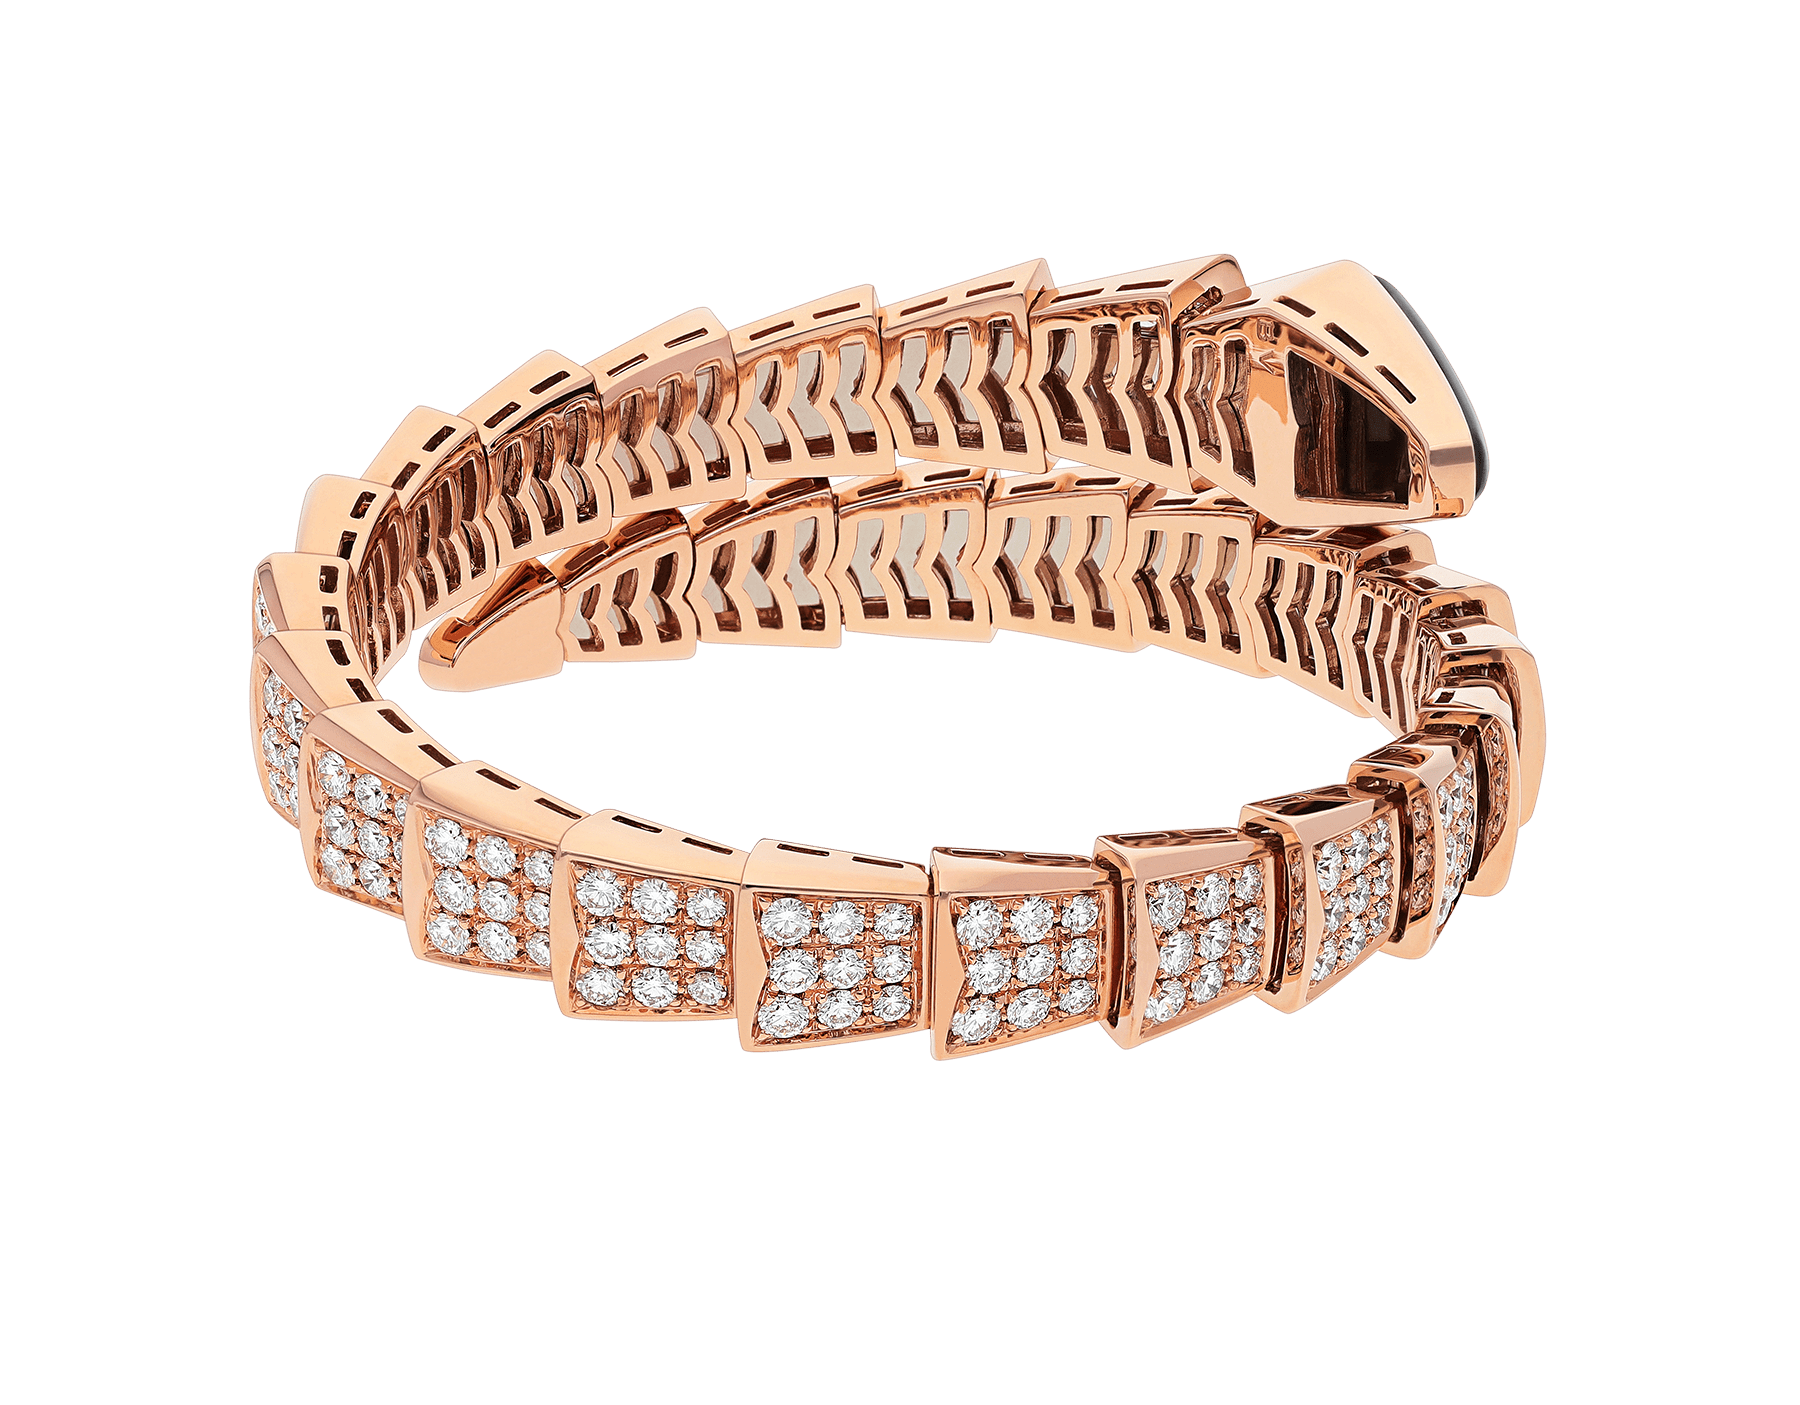 Serpenti one-coil bracelet in 18 kt rose gold, set with full pavé diamonds and an onyx element on the head. BR855196 image 3